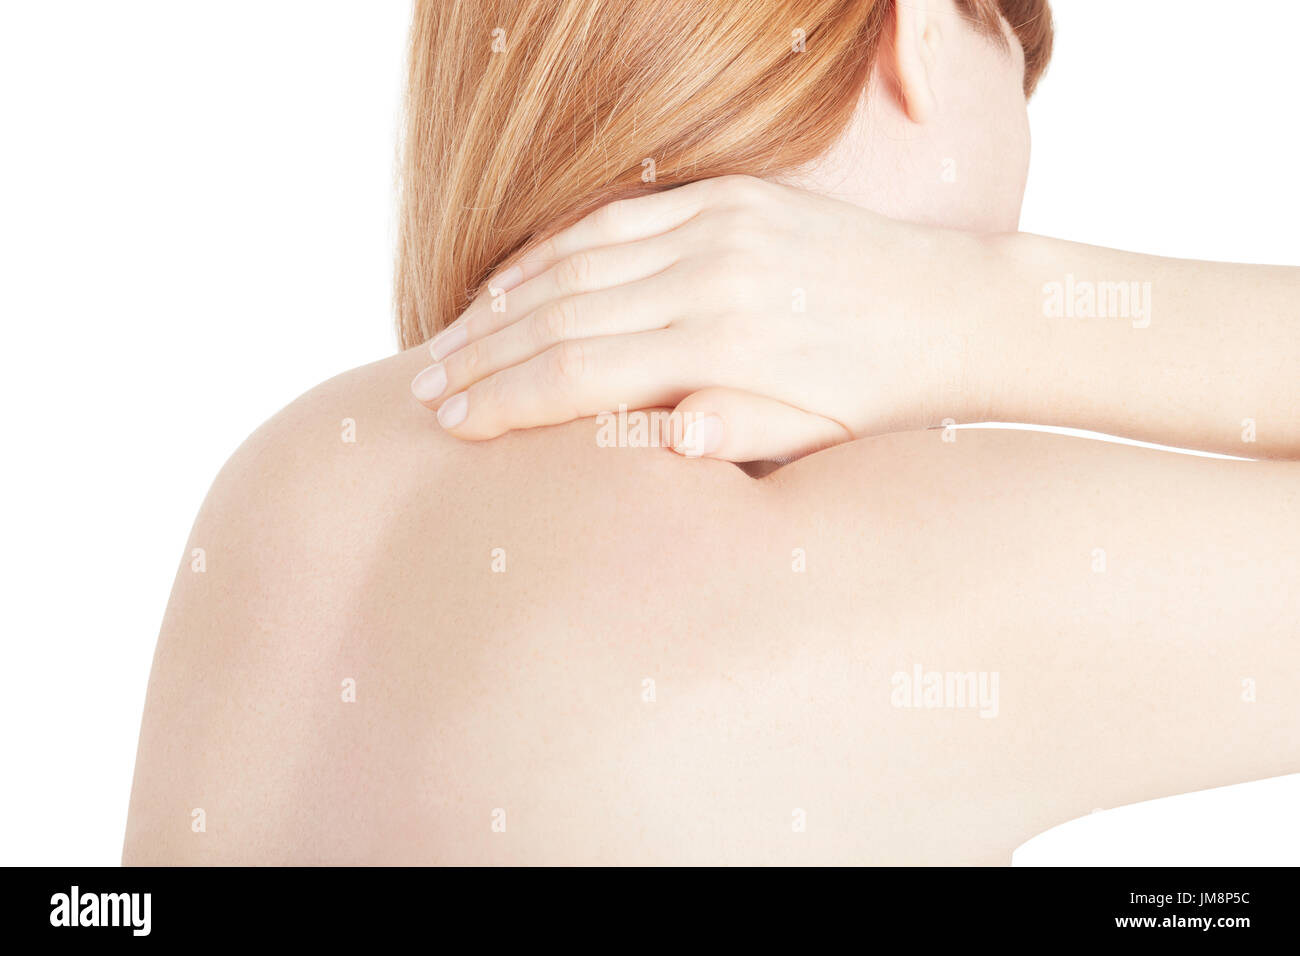 Woman with neck pain touching with hand the painful part isolated on white, clipping path - Stock Image